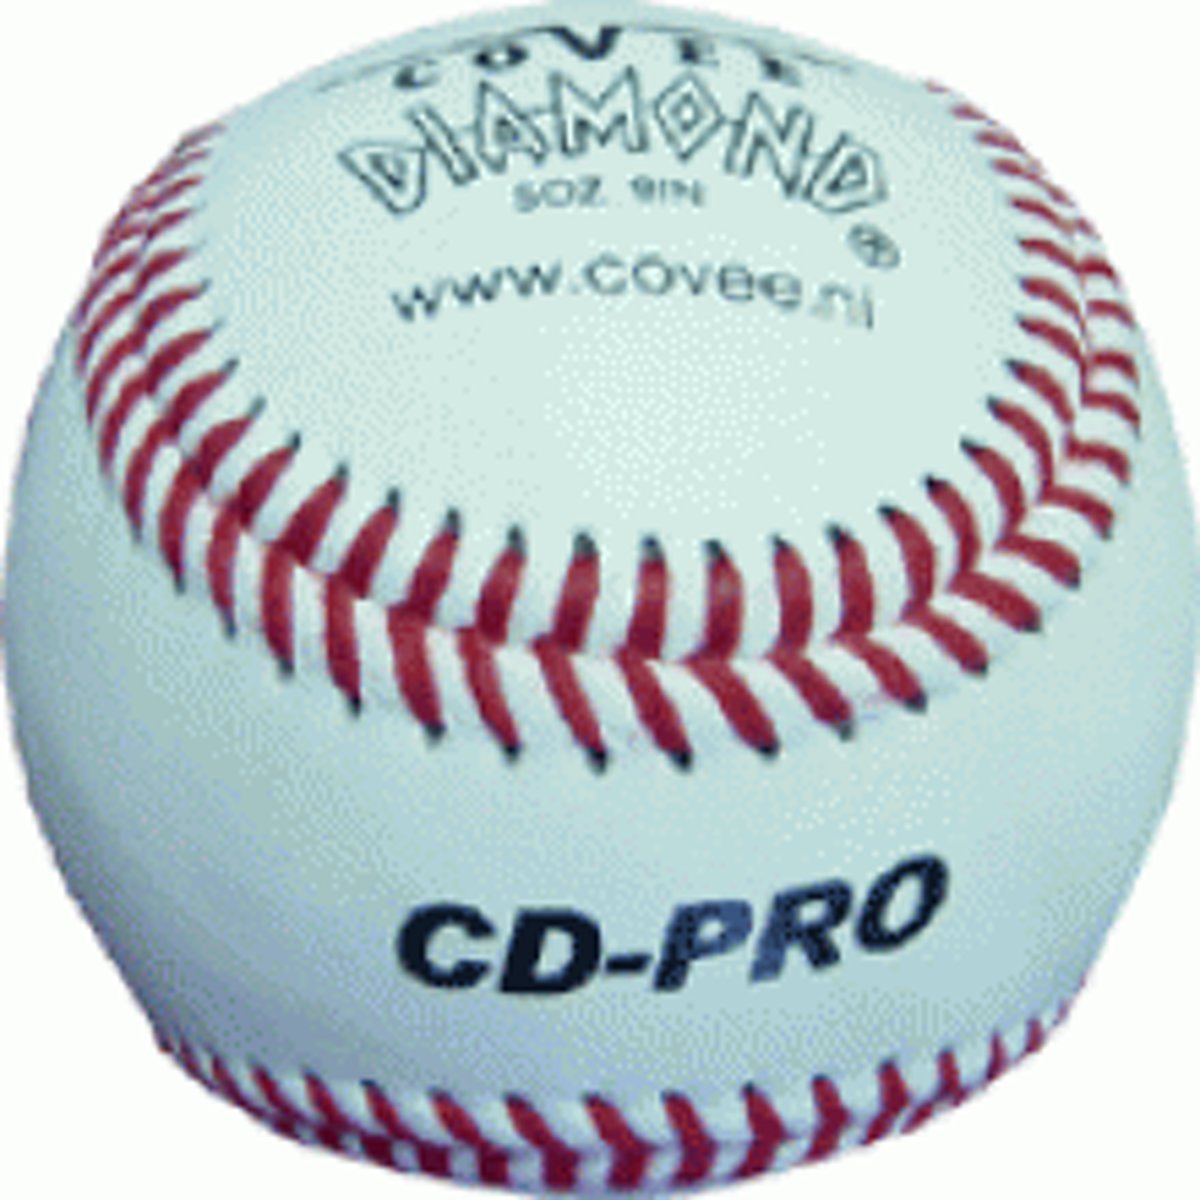 Covee/Diamond CD-PRO Honkbal: Leder (12st.) kopen